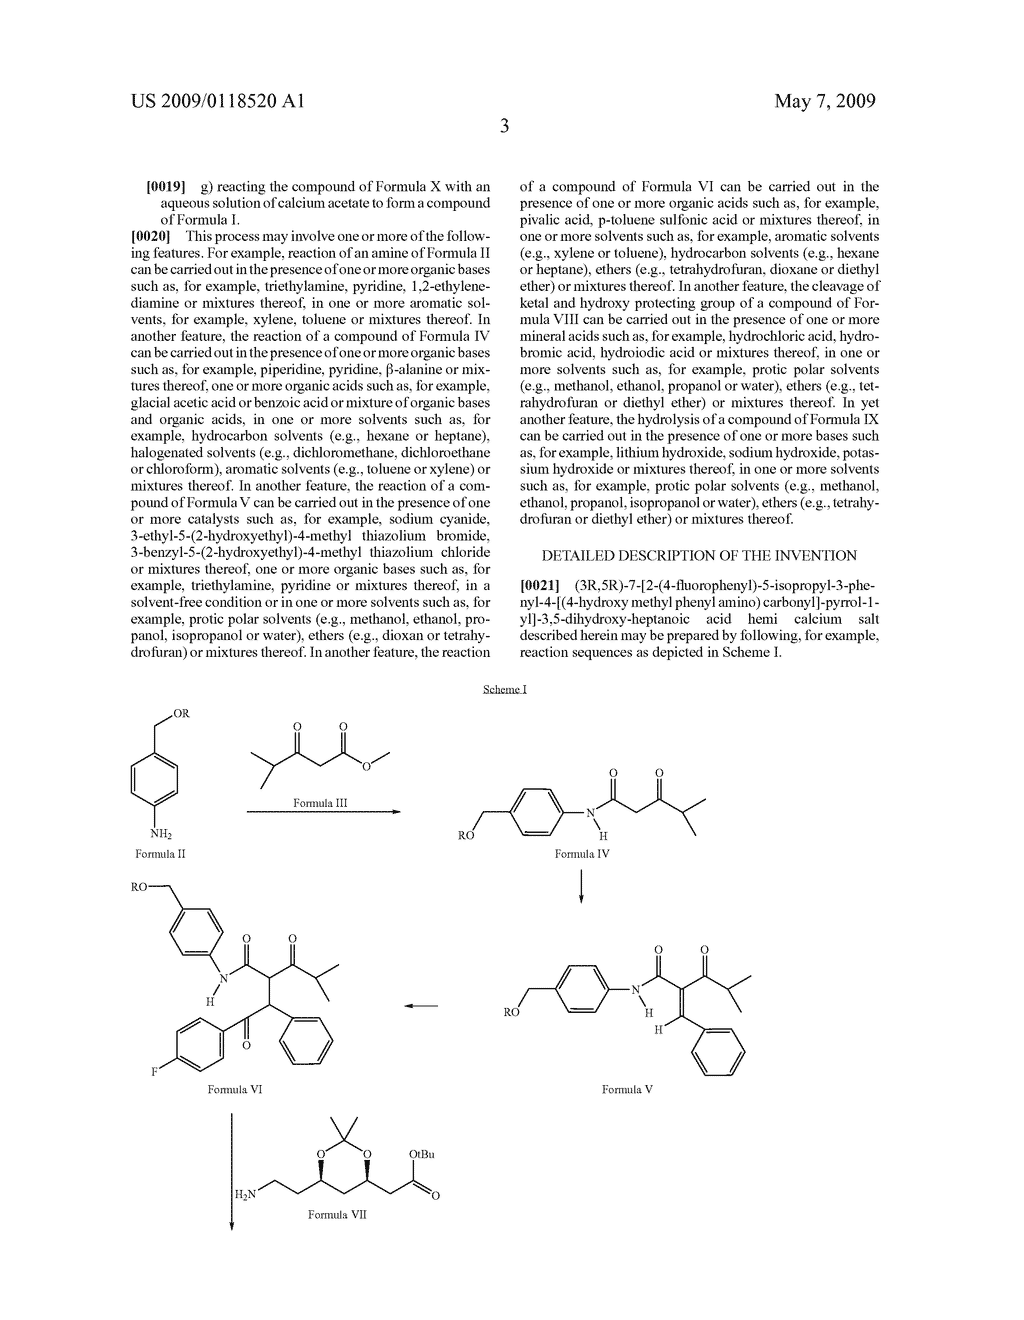 PROCESS FOR PREPARATION OF (3R, 5R)-7-[2-(4-FLUOROPHENYL)-5-ISOPROPYL-3-PHENYL-4-[(4-HYDROXY METHYL PHENYL AMINO) CARBONYL]-PYRROL-1-YL]-3,5-DIHYDROXY-HEPTANOIC ACID HEMI CALCIUM SALT - diagram, schematic, and image 04